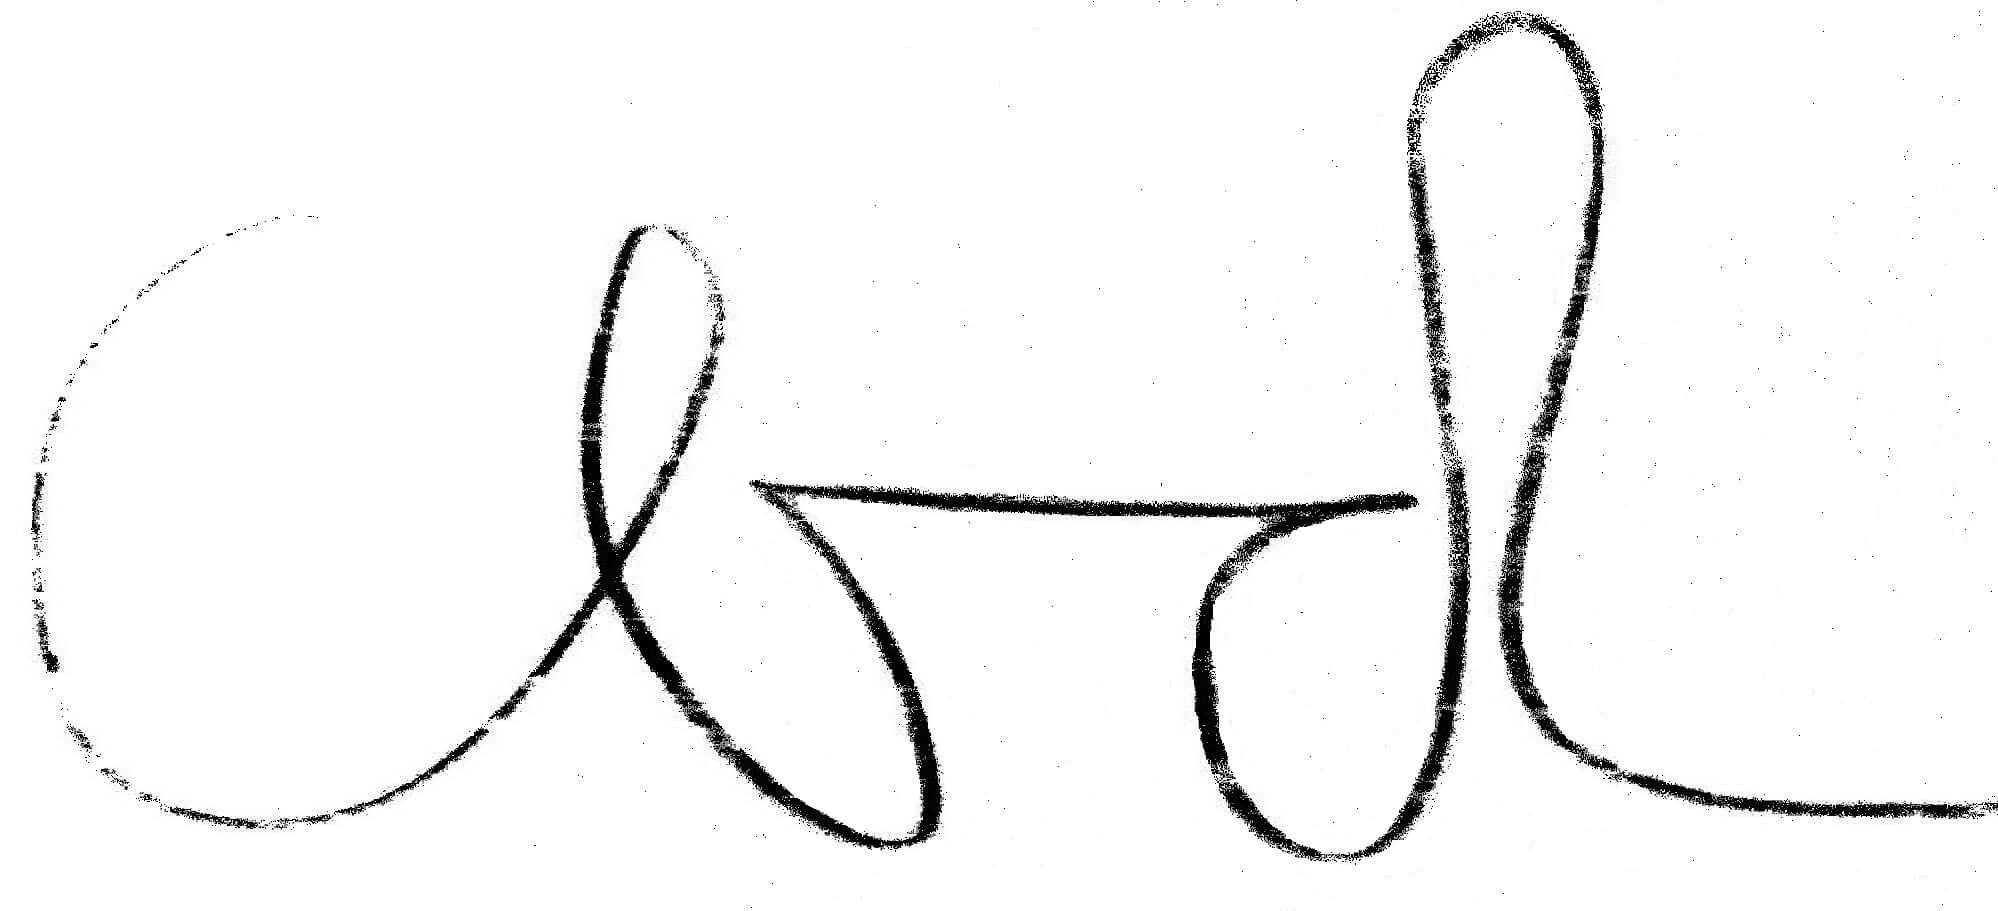 Dragomirs's signature